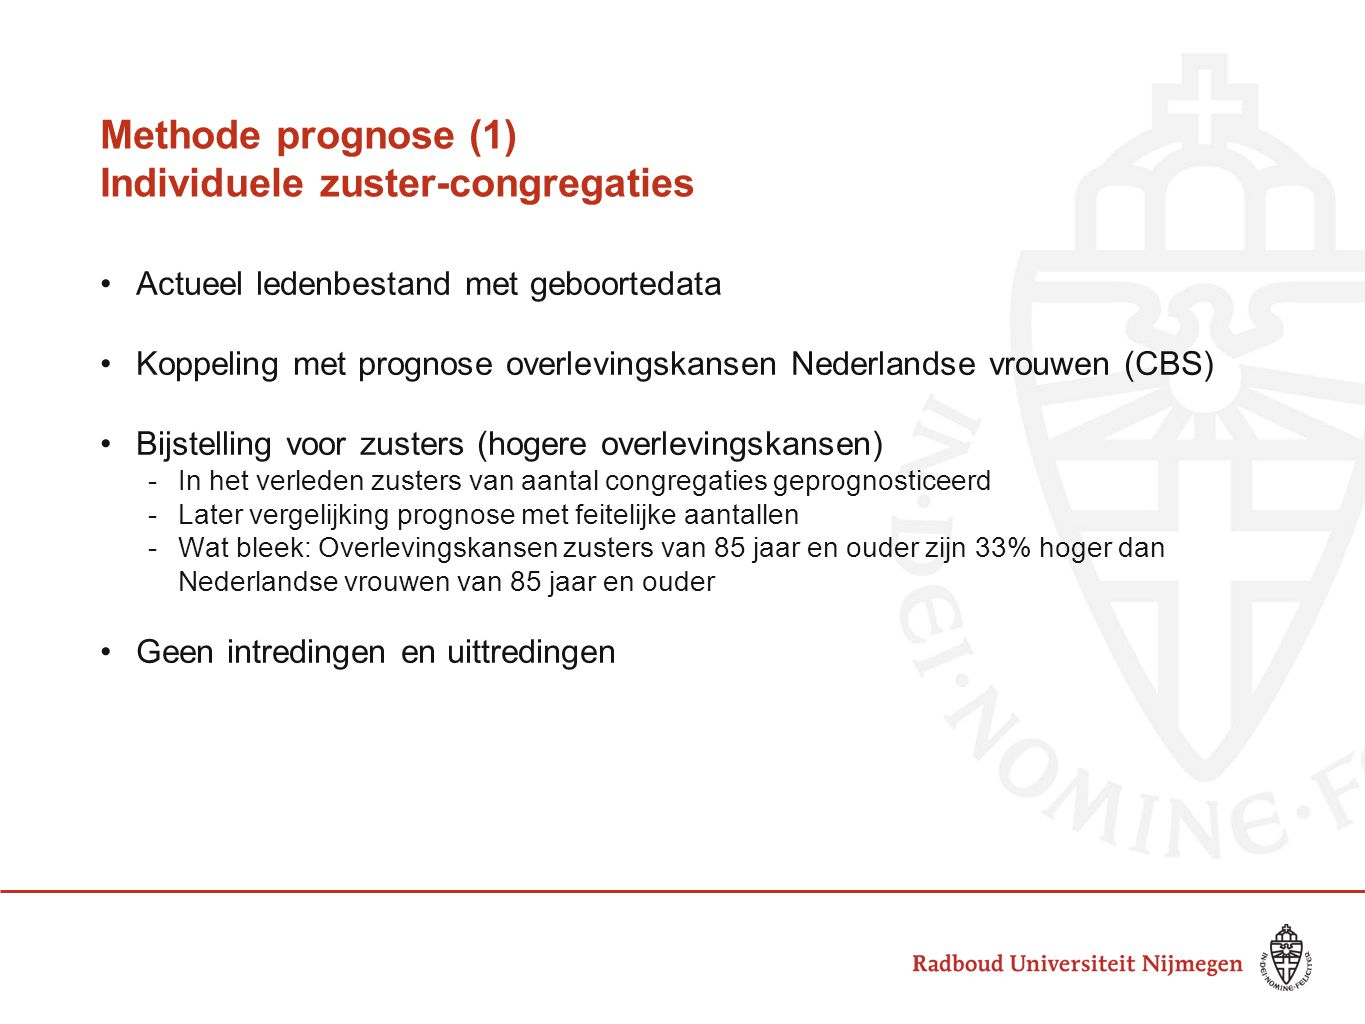 Methode prognose (1) Individuele zuster-congregaties